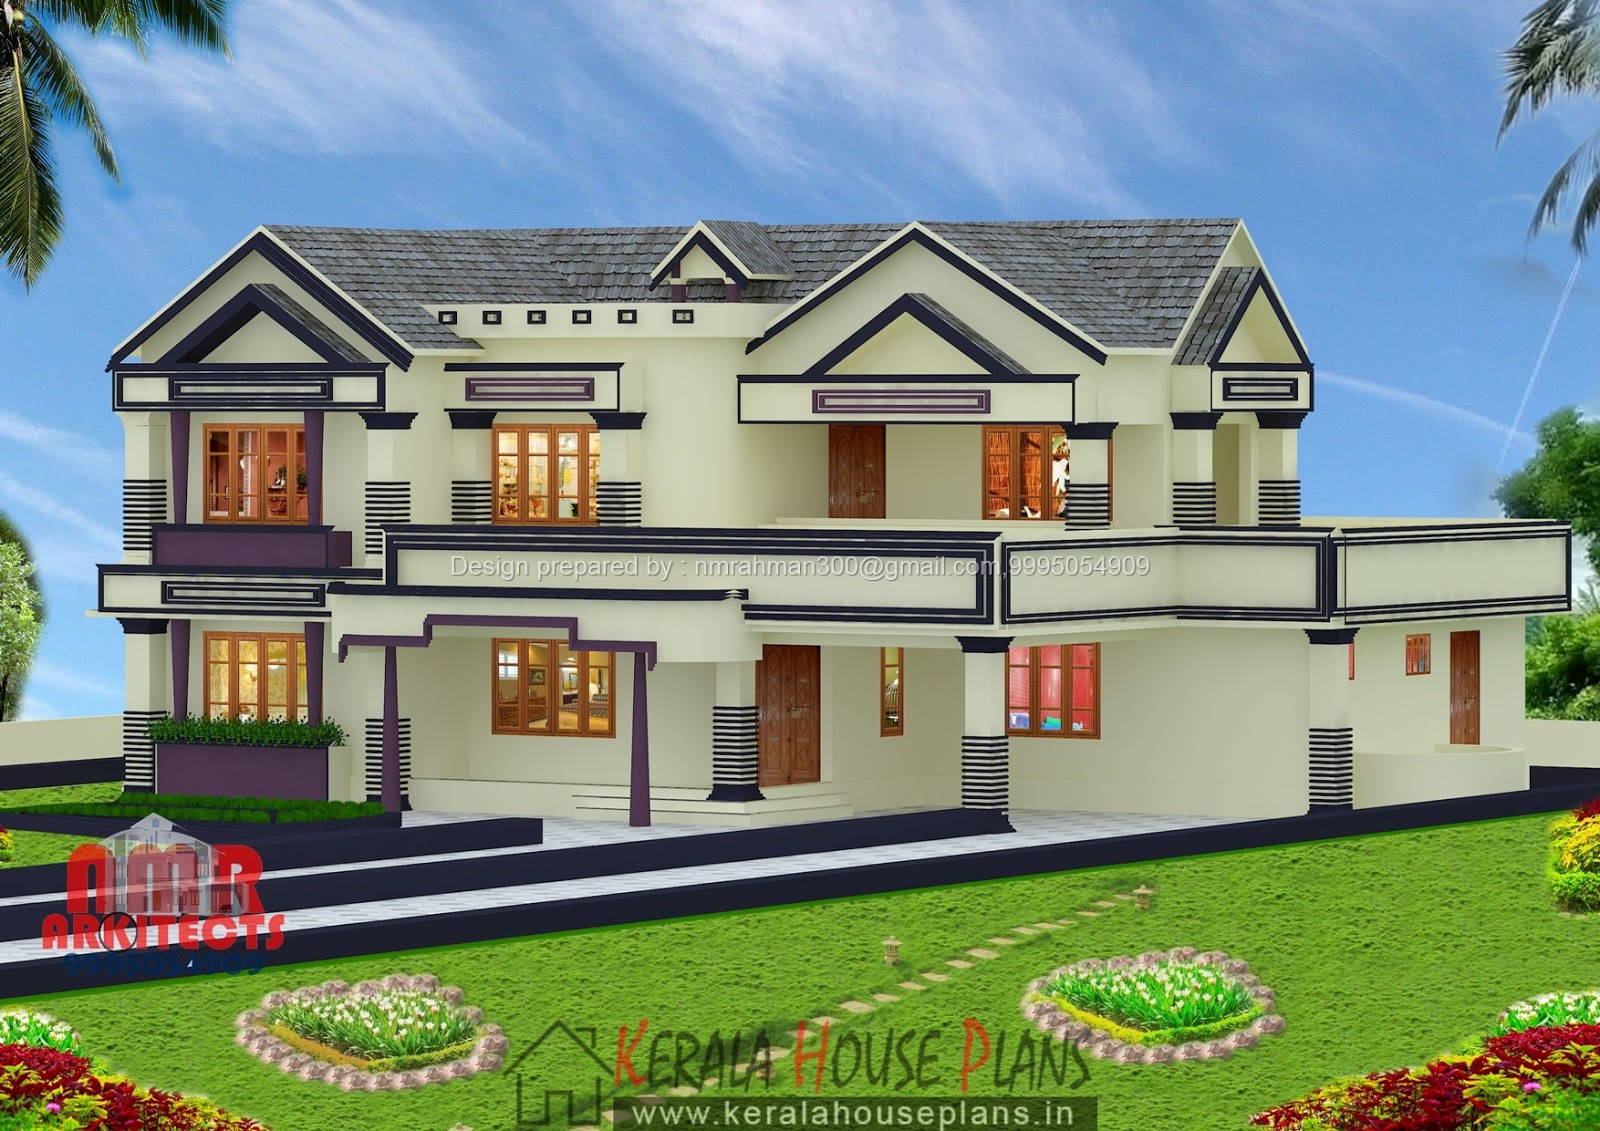 Kerala house plans above 3000 sq ft kerala house plans for Home designs 3000 sq ft